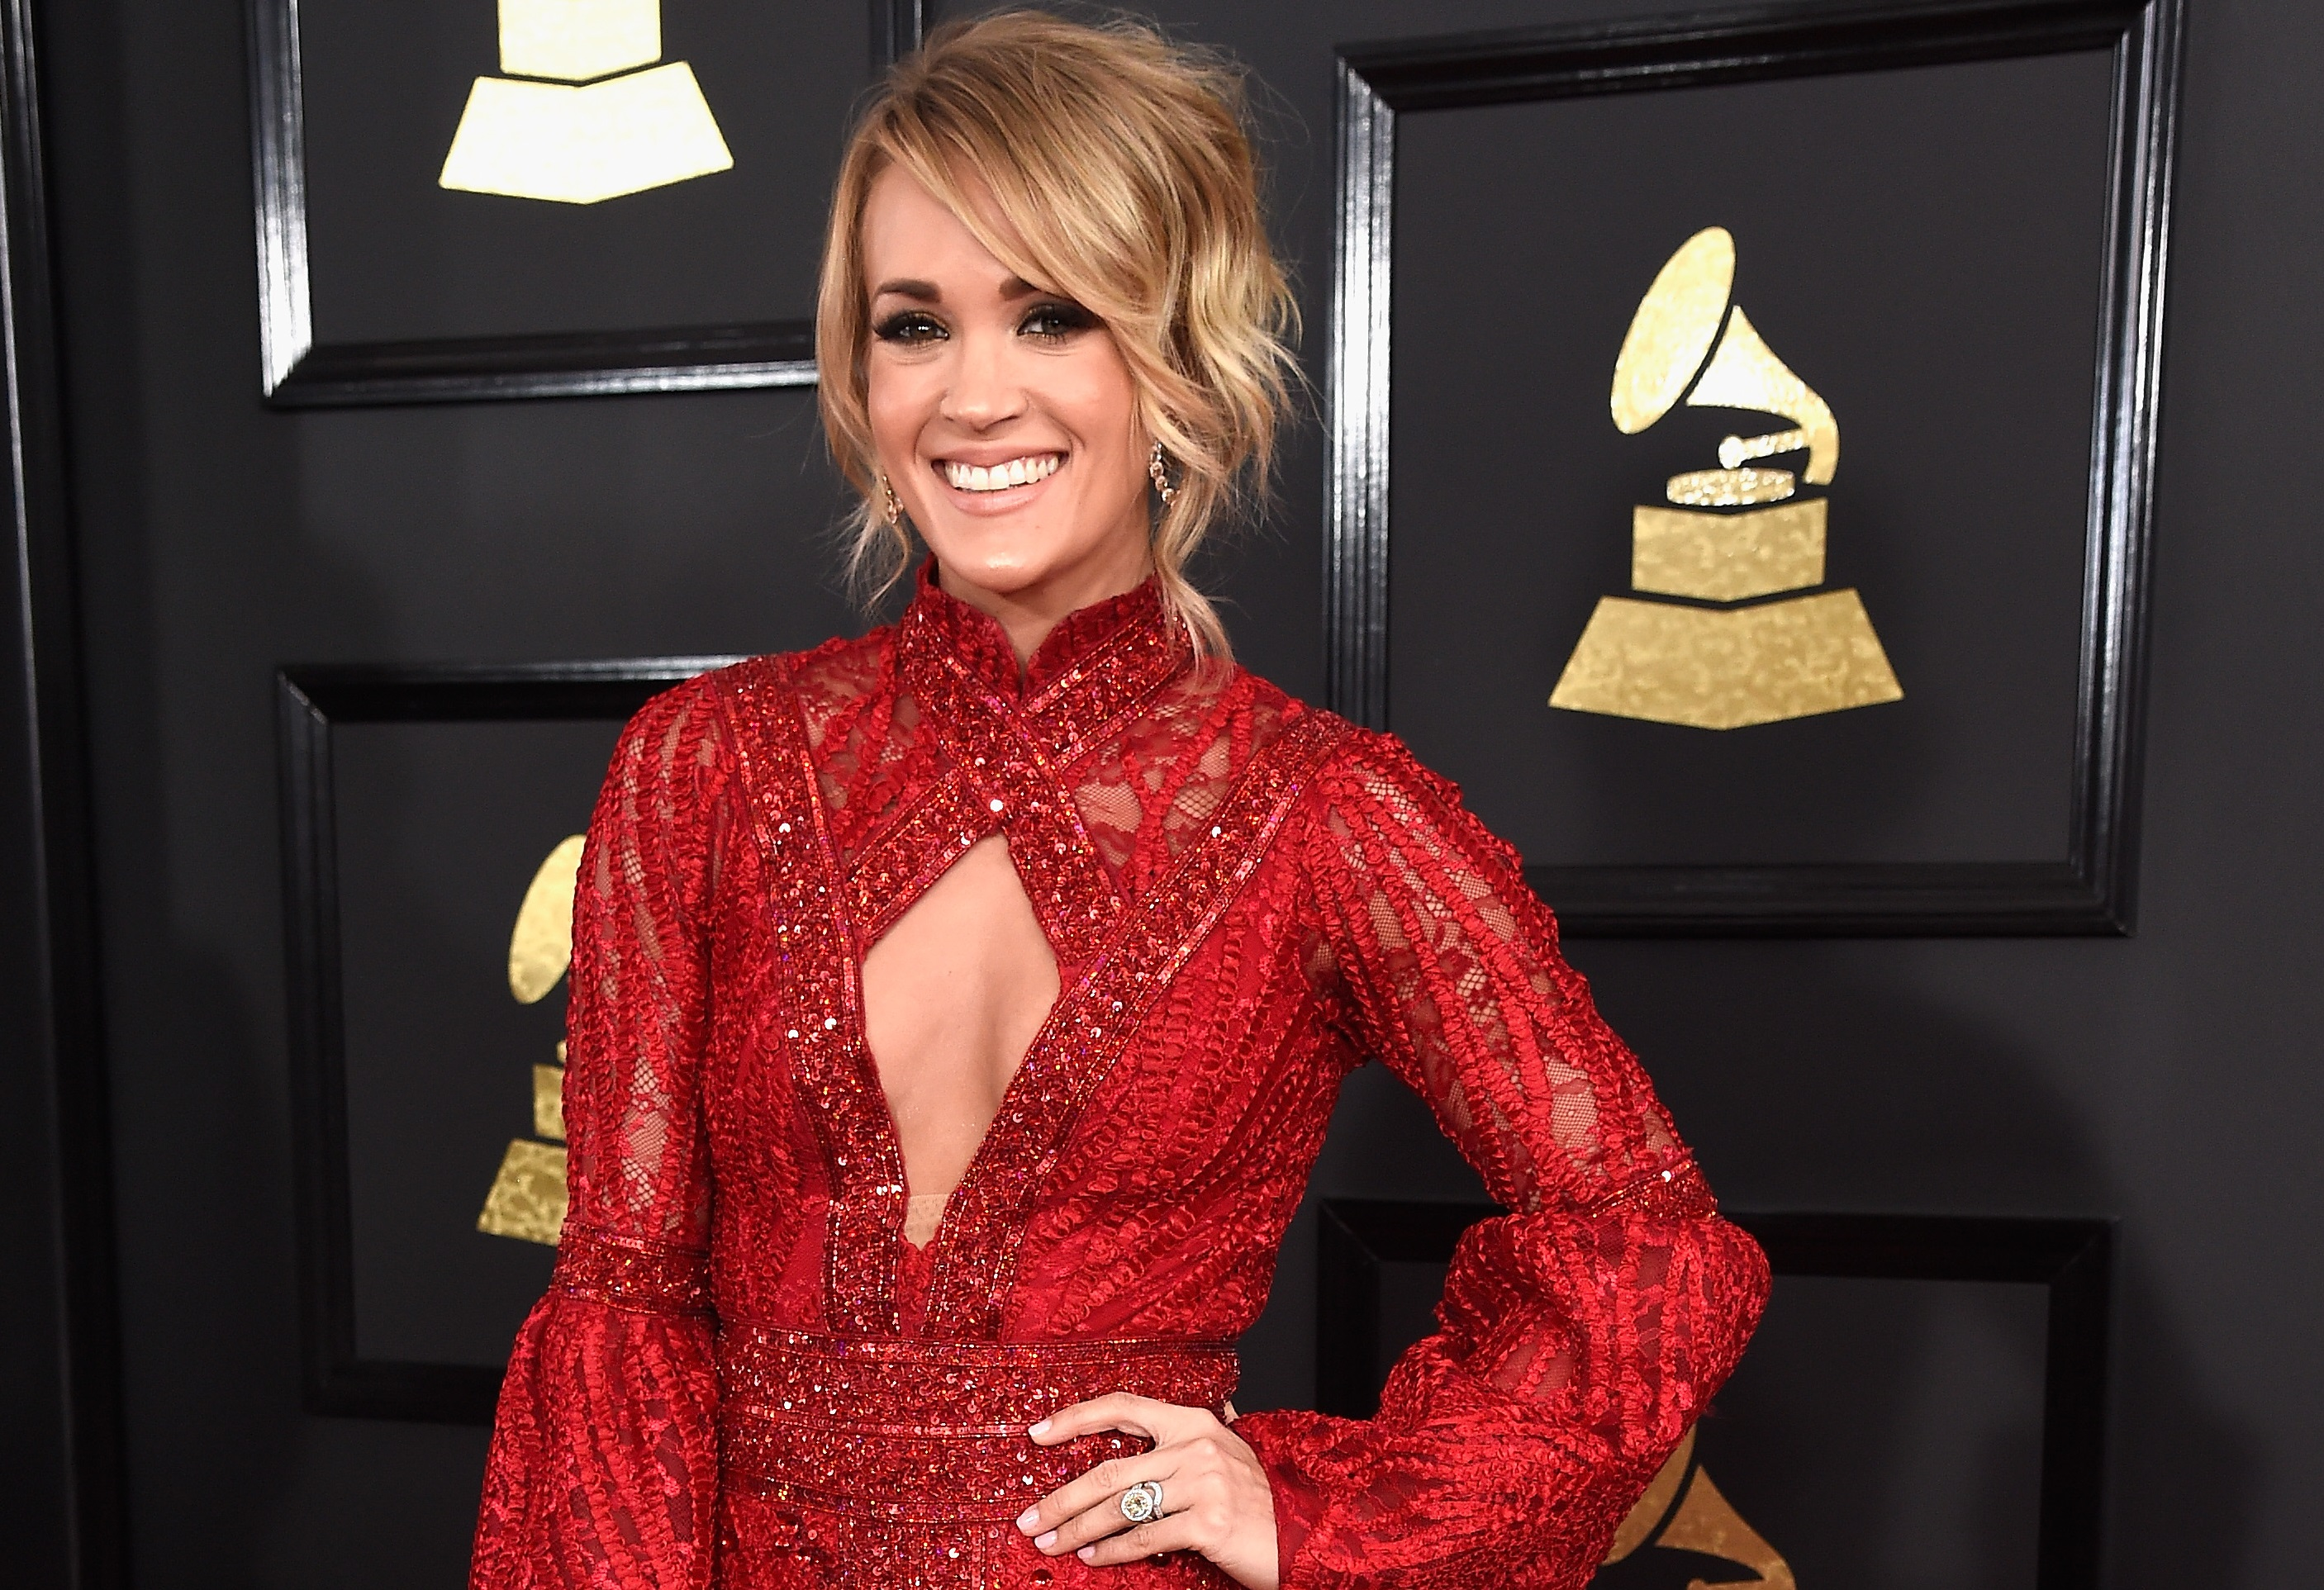 Carrie Underwood Says She's 'Taking a Little Break' from the Road